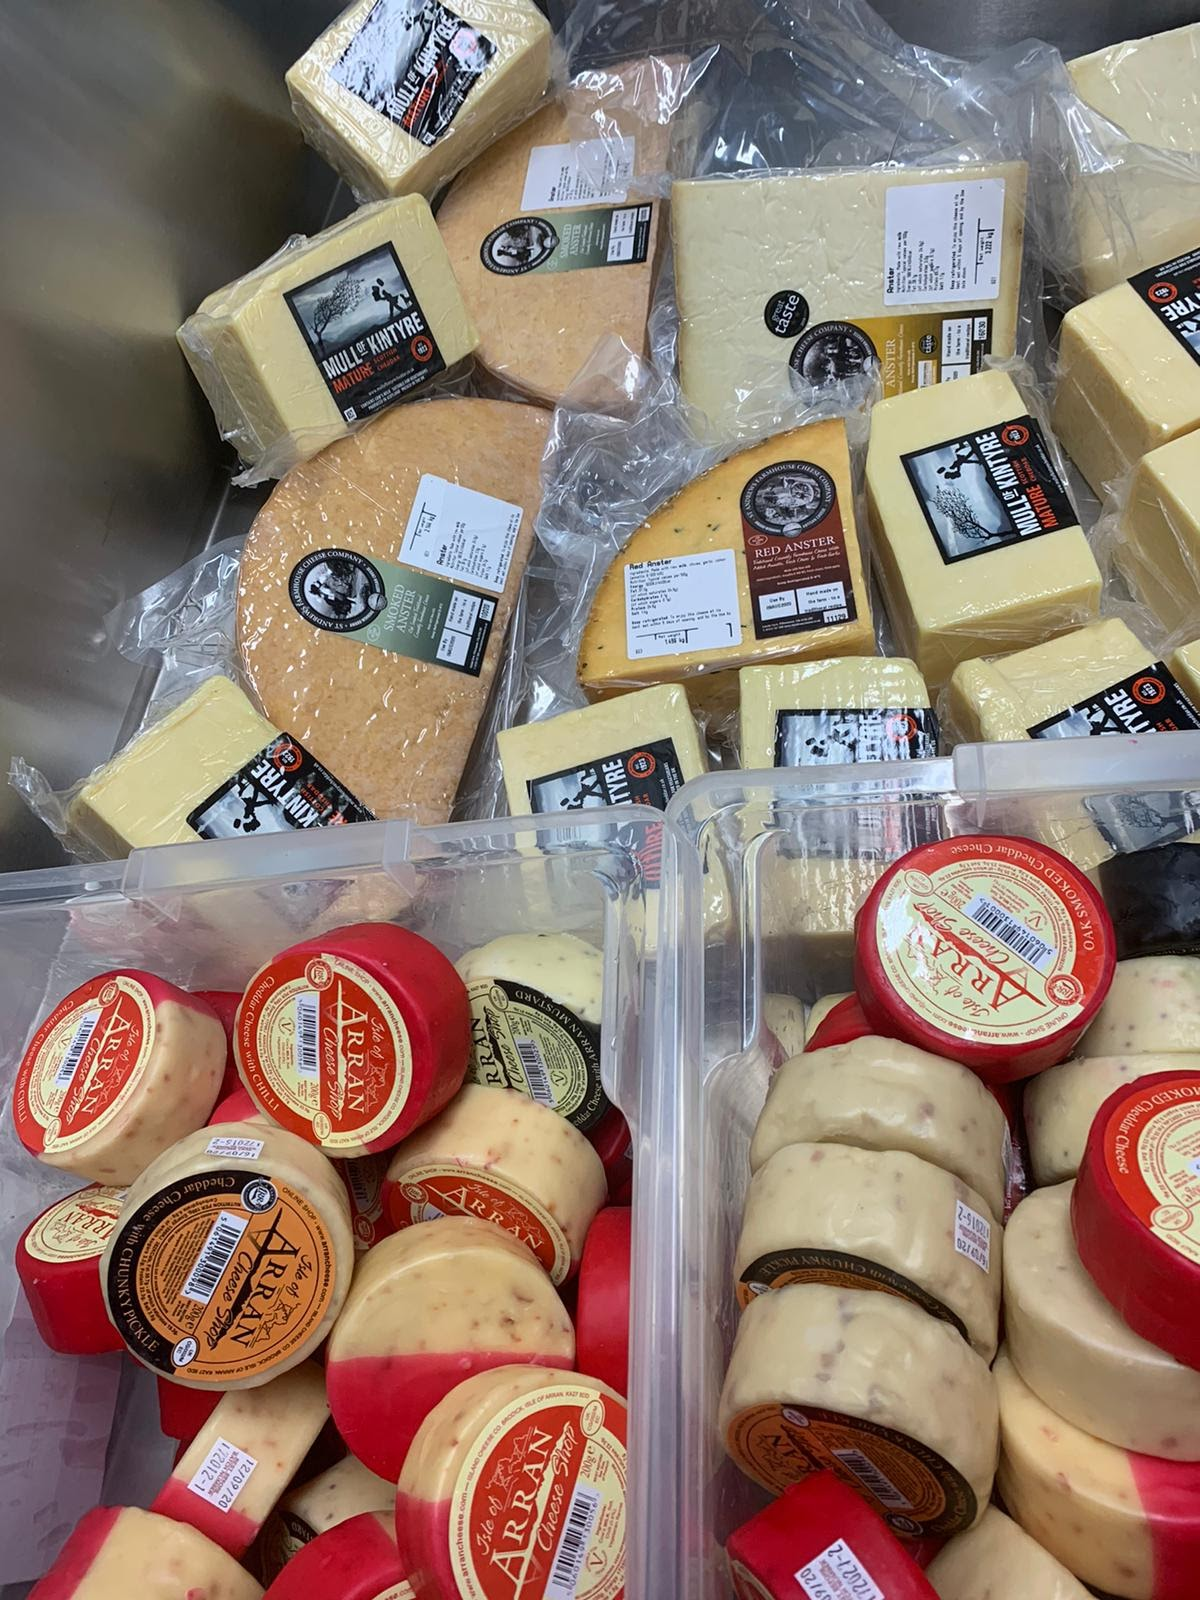 A huge pile of Scottish cheese